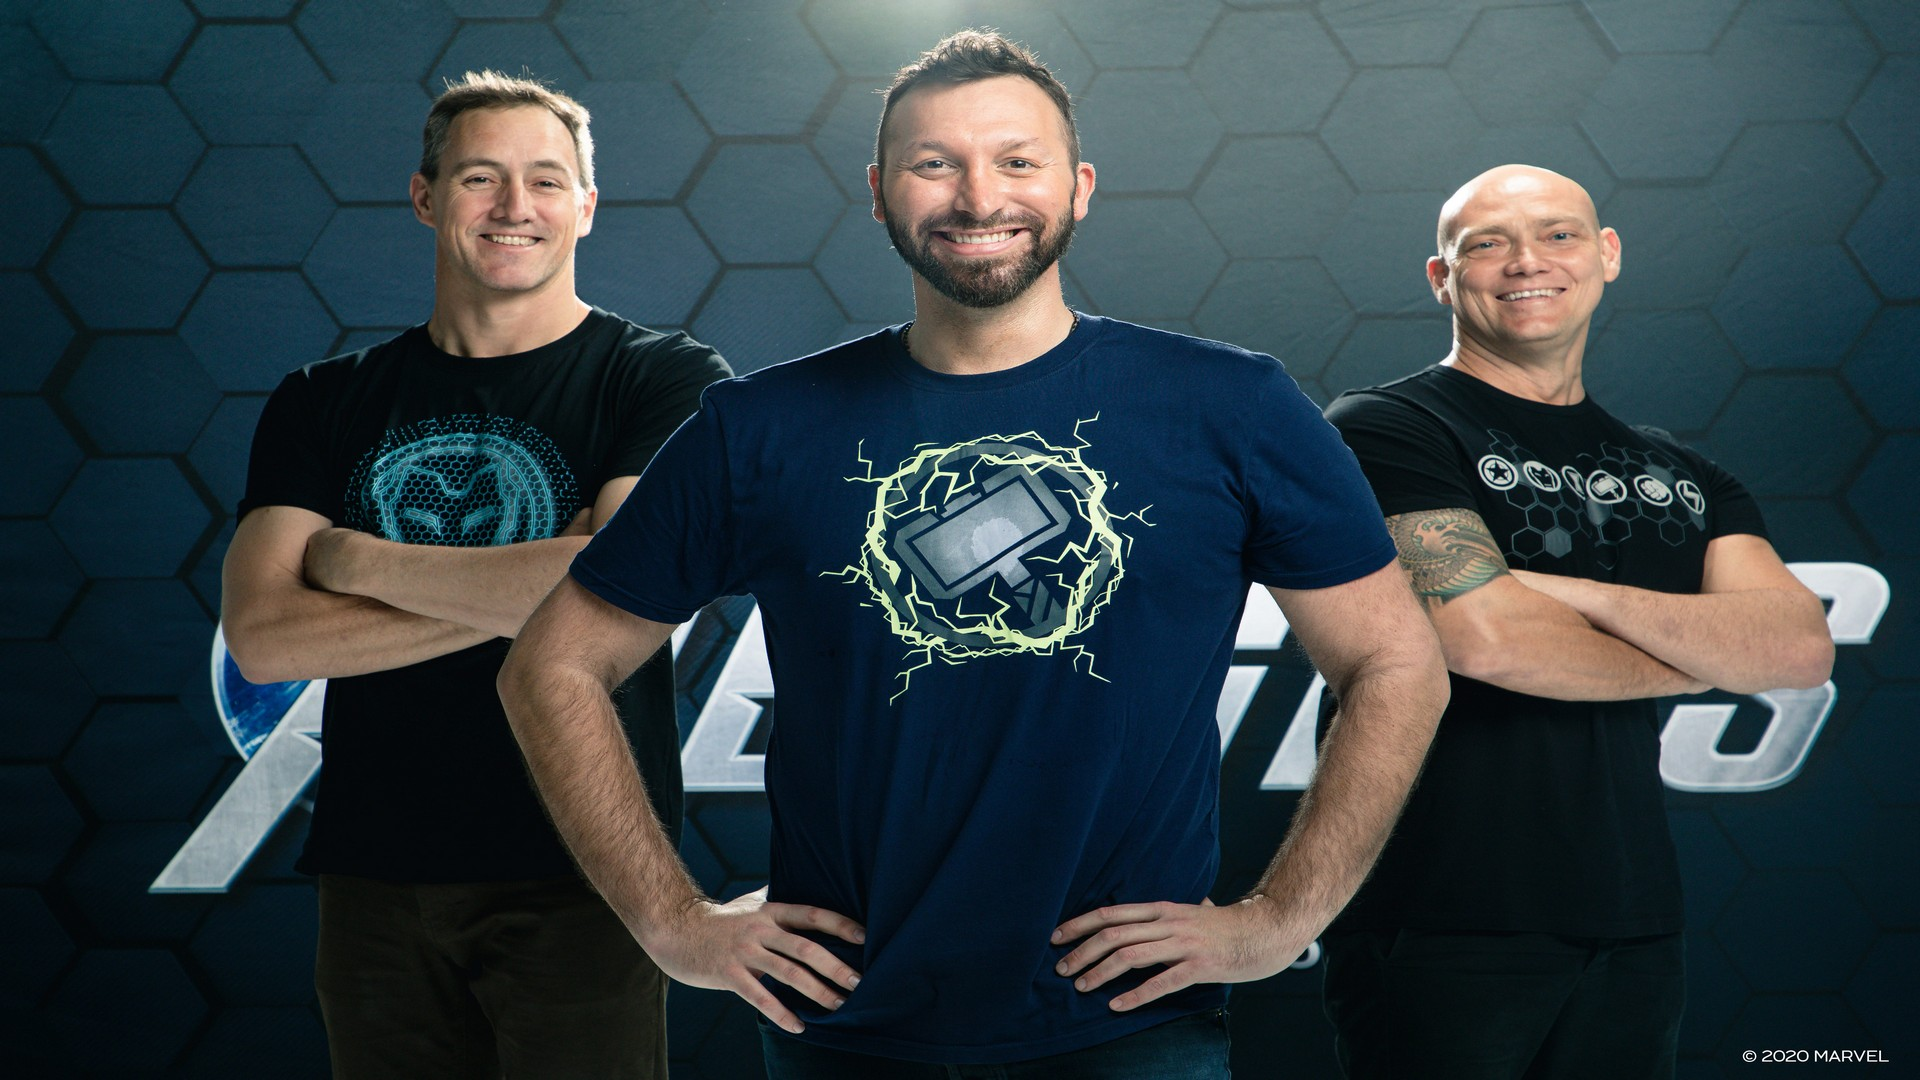 Marvel's Avengers Launches Today Reassembling Australia's Gold Medal Winning Men's Freestyle Relay Team For The 20th Anniversary